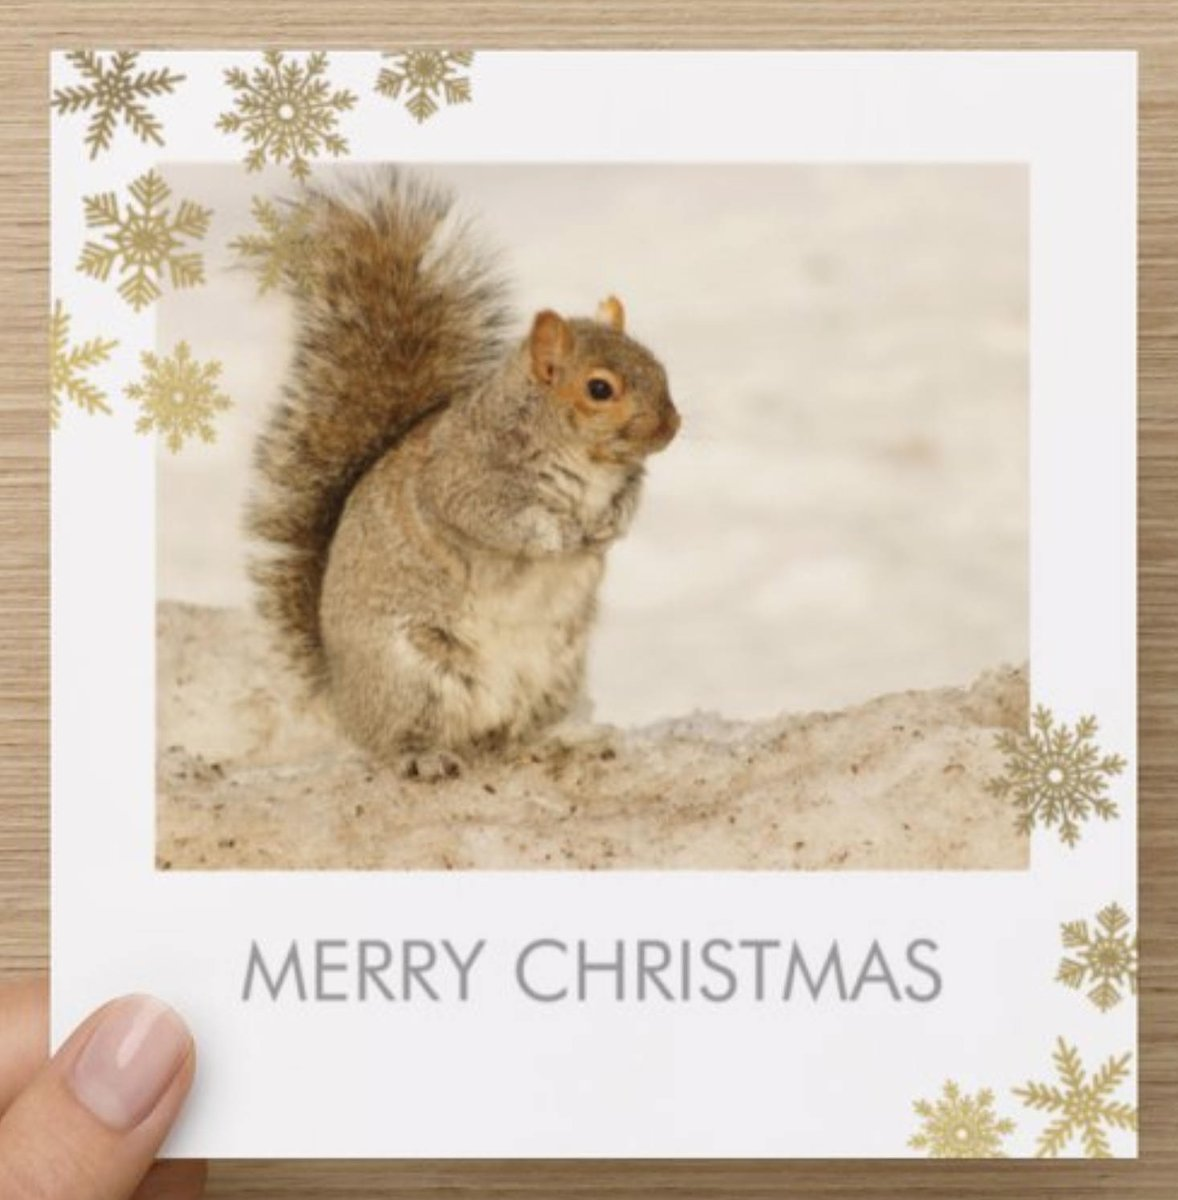 Christmas Greeting Card Christmas Cards Carte de Noel Blank Greeting Card Blank Card Blank Christmas Card Handmade Christmas Card  #gift #sale #photography #nature #Wallart #NaturisticImages #Etsy #ChristmasCard